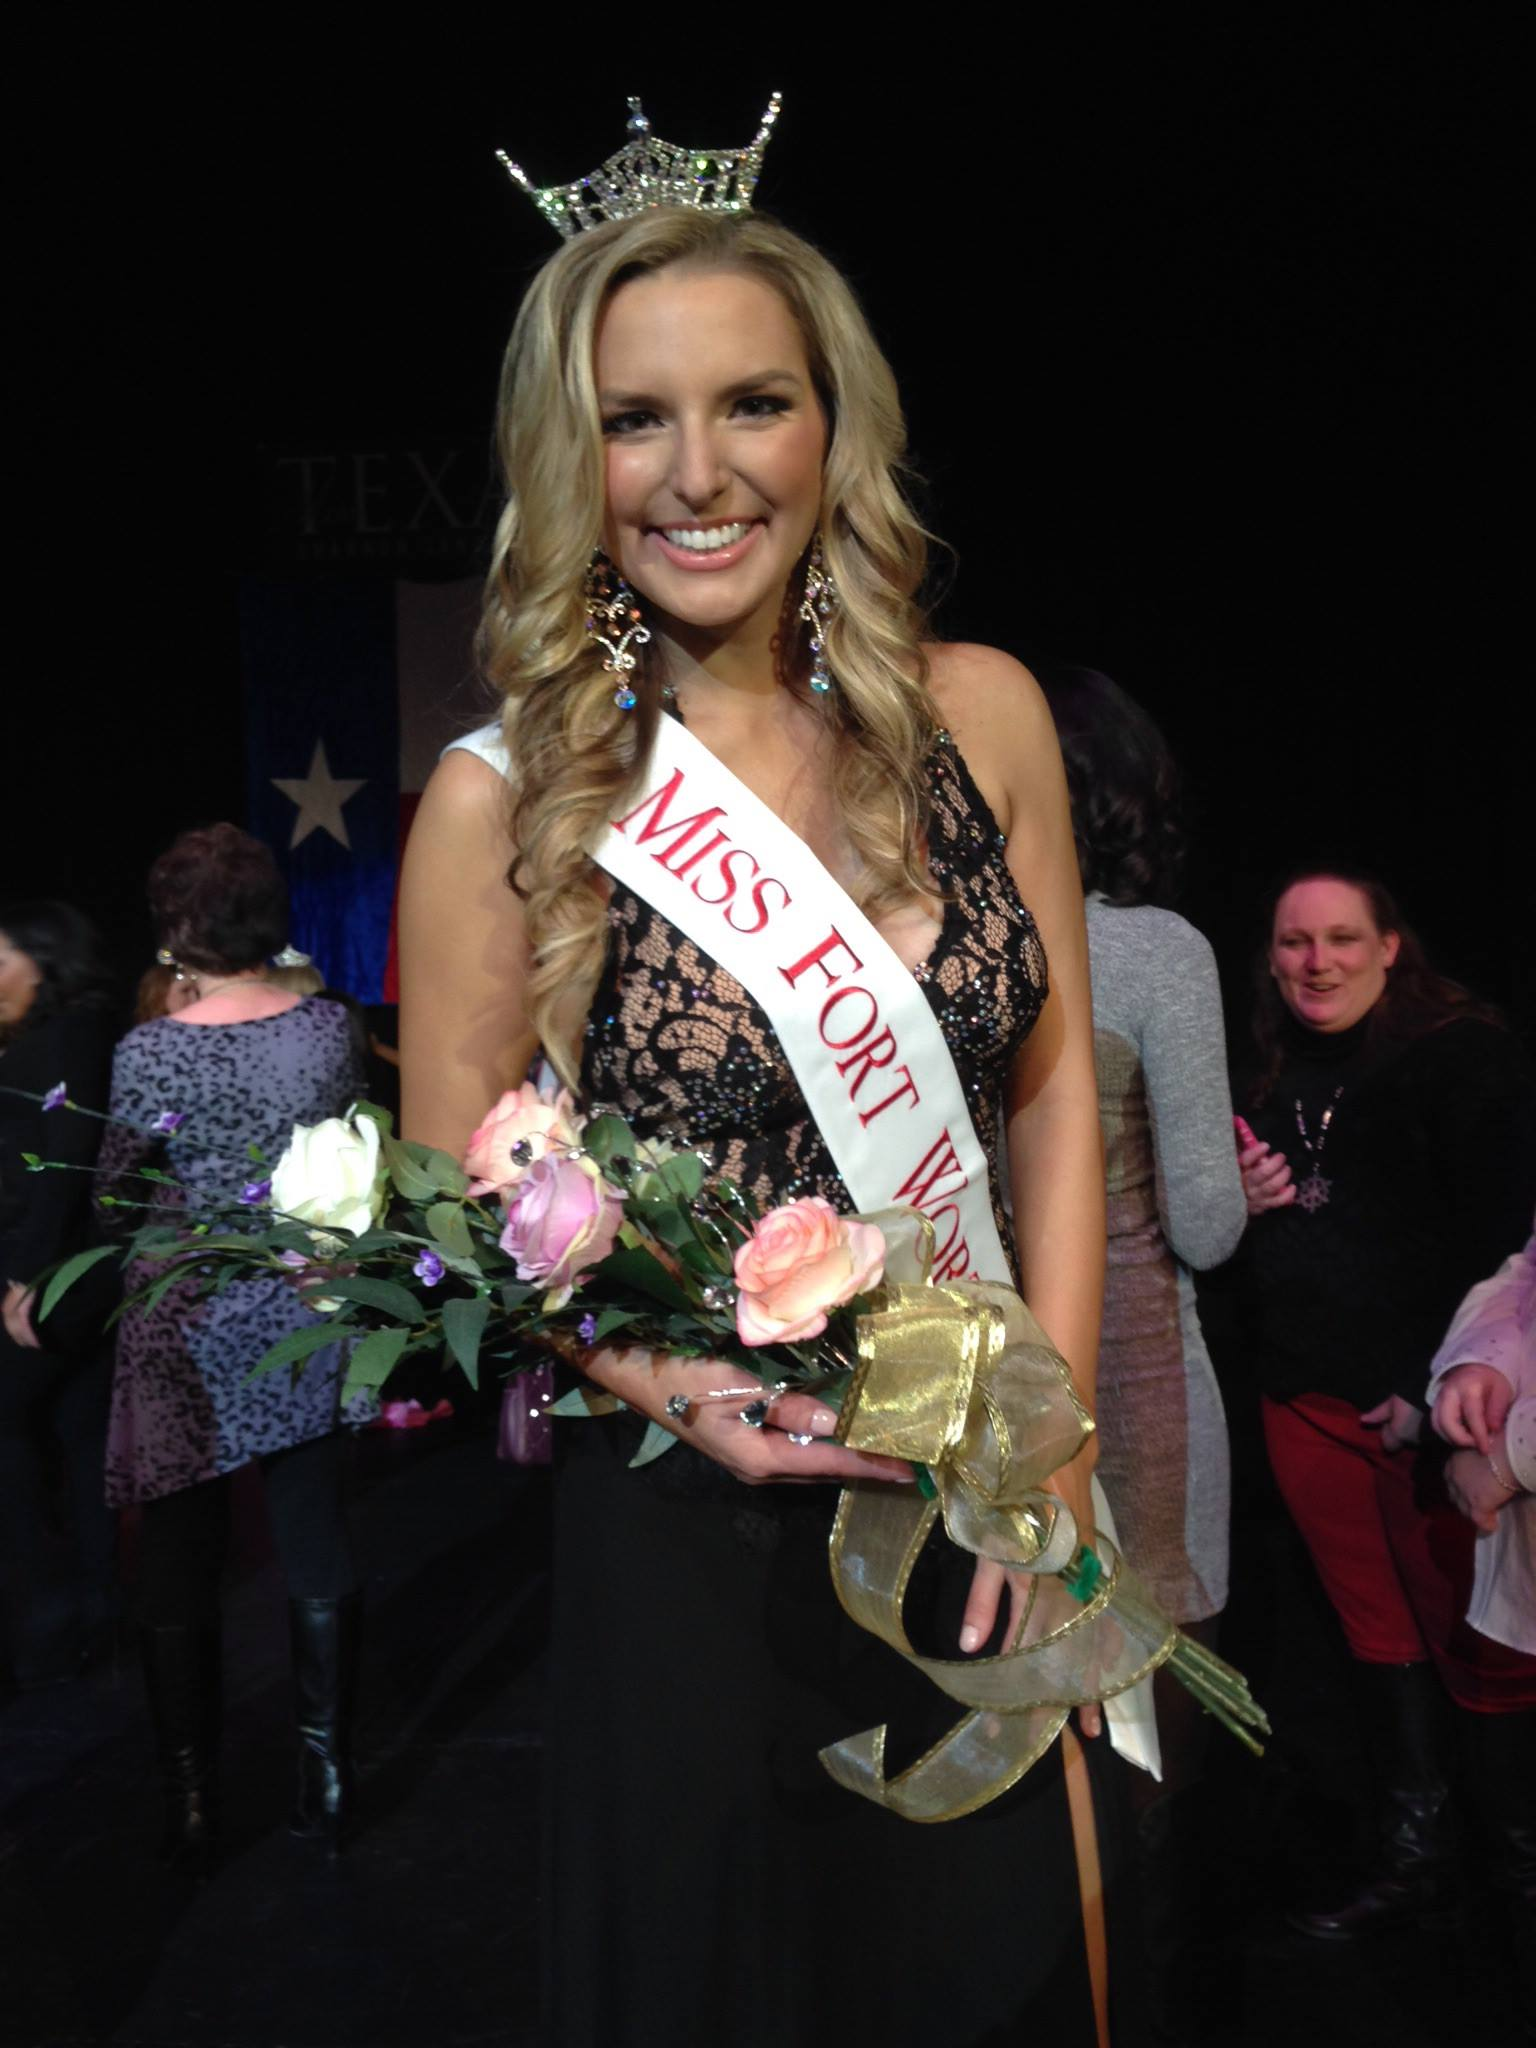 Miriam Tew was crowned Miss Fort Worth on Nov. 28 at the Fort Worth Academy of Fine Arts